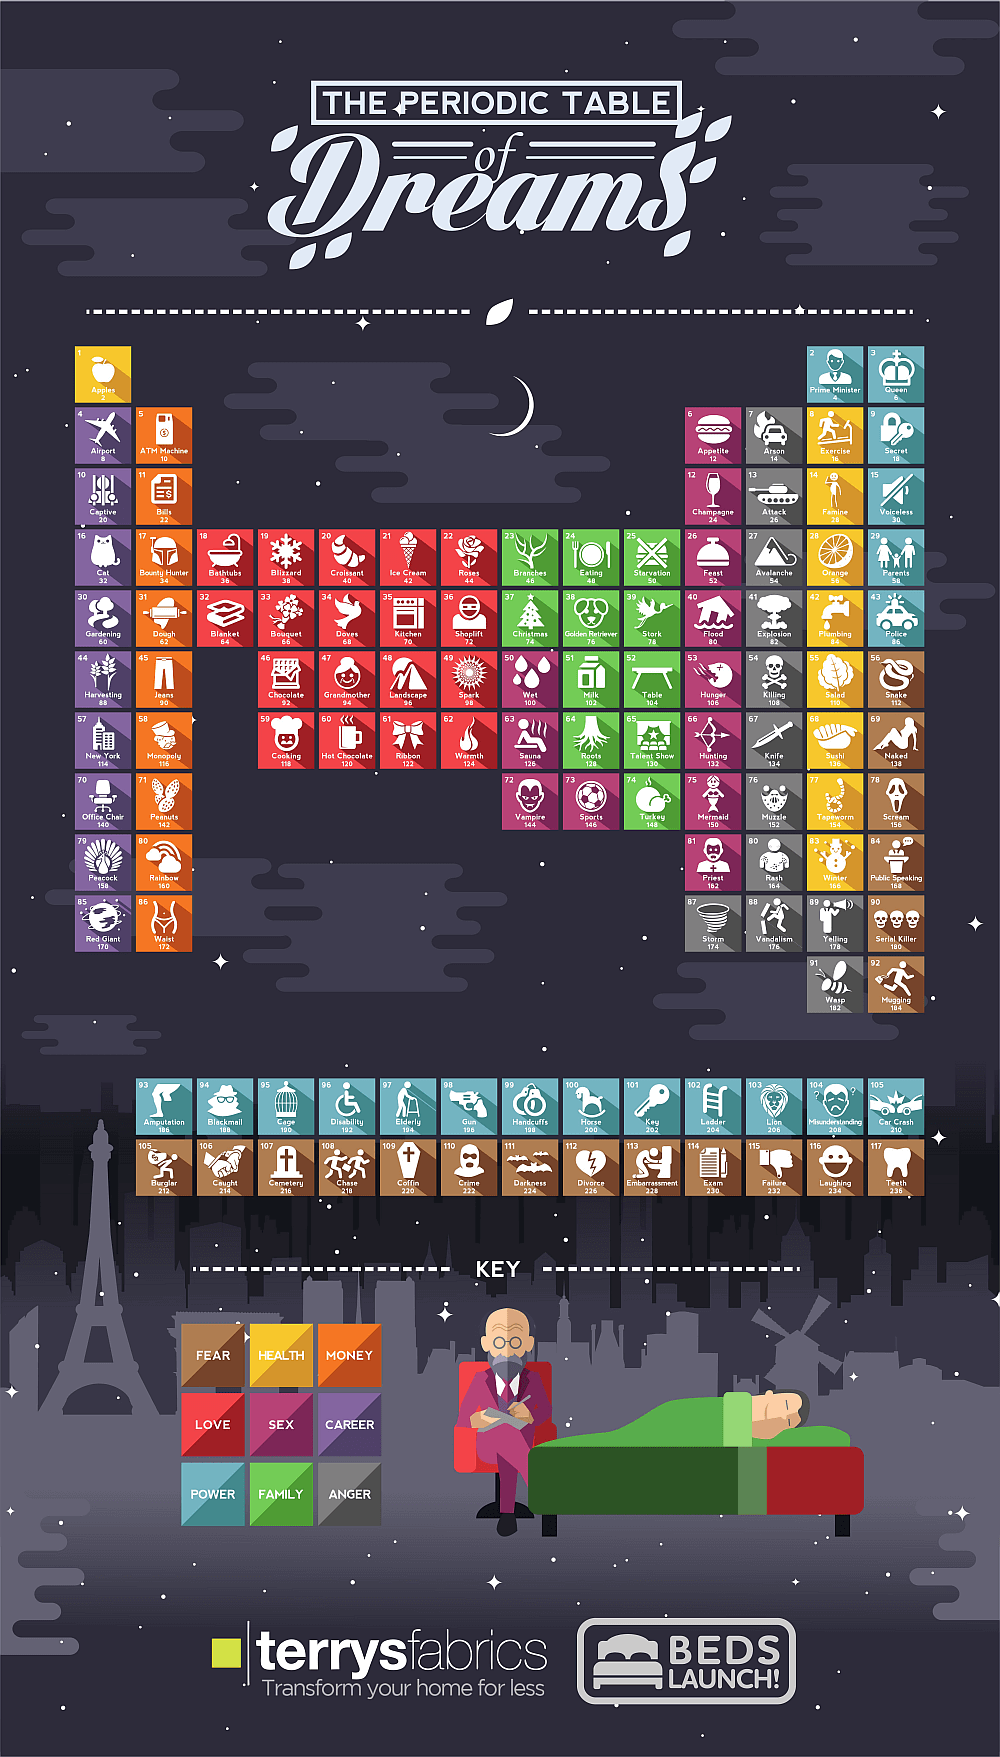 Periodic Table of Dreams Infographic